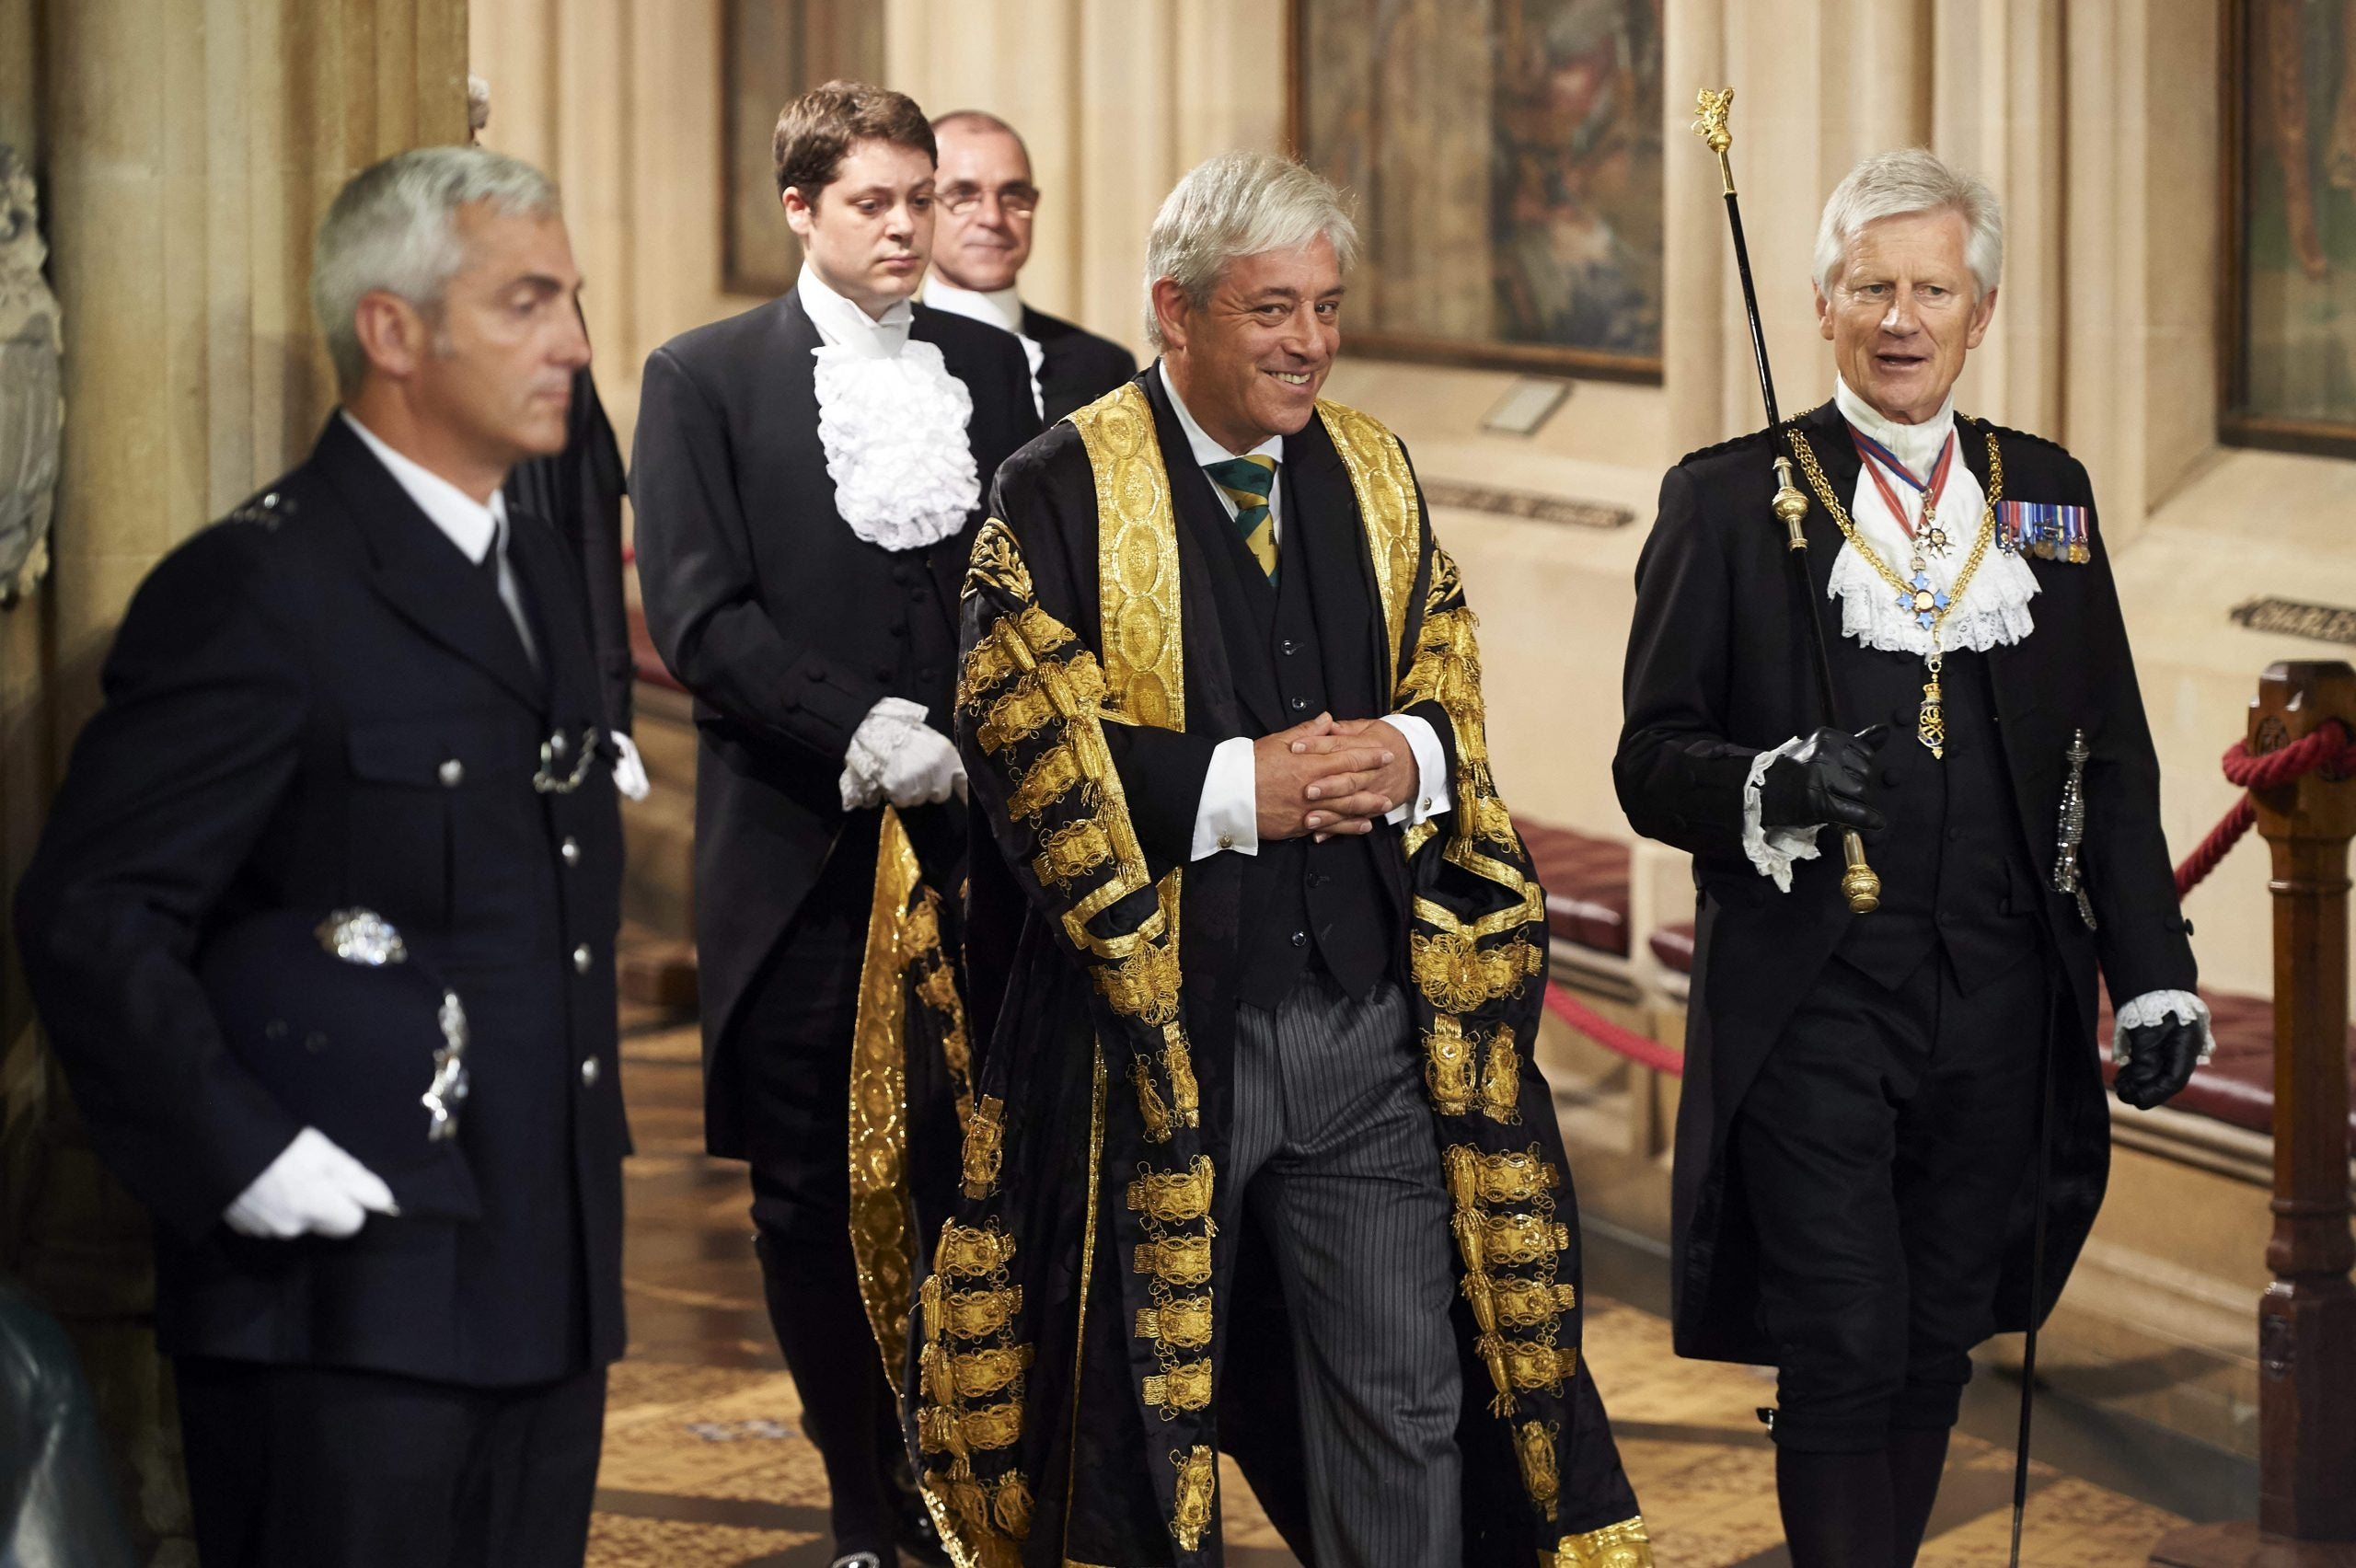 The obsession with wearing ties in parliament shows our skewed priorities